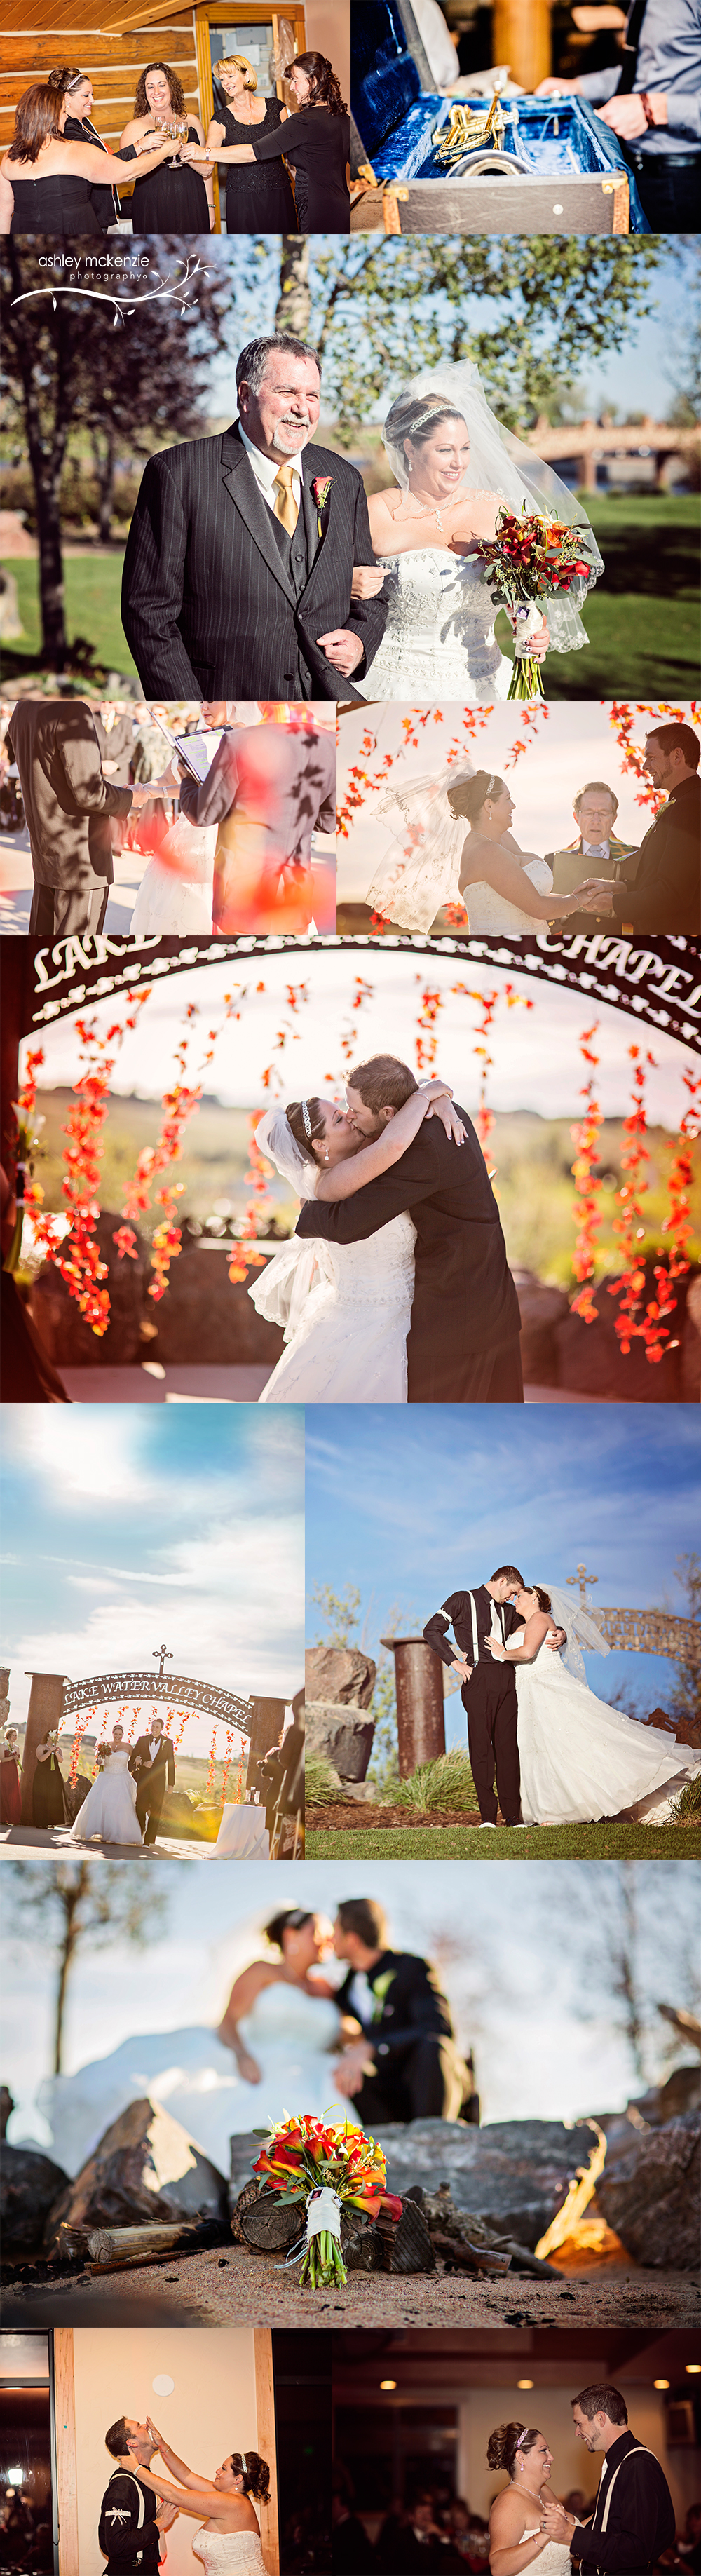 Wedding Photography by Ashley McKenzie Photography in Windsor, CO